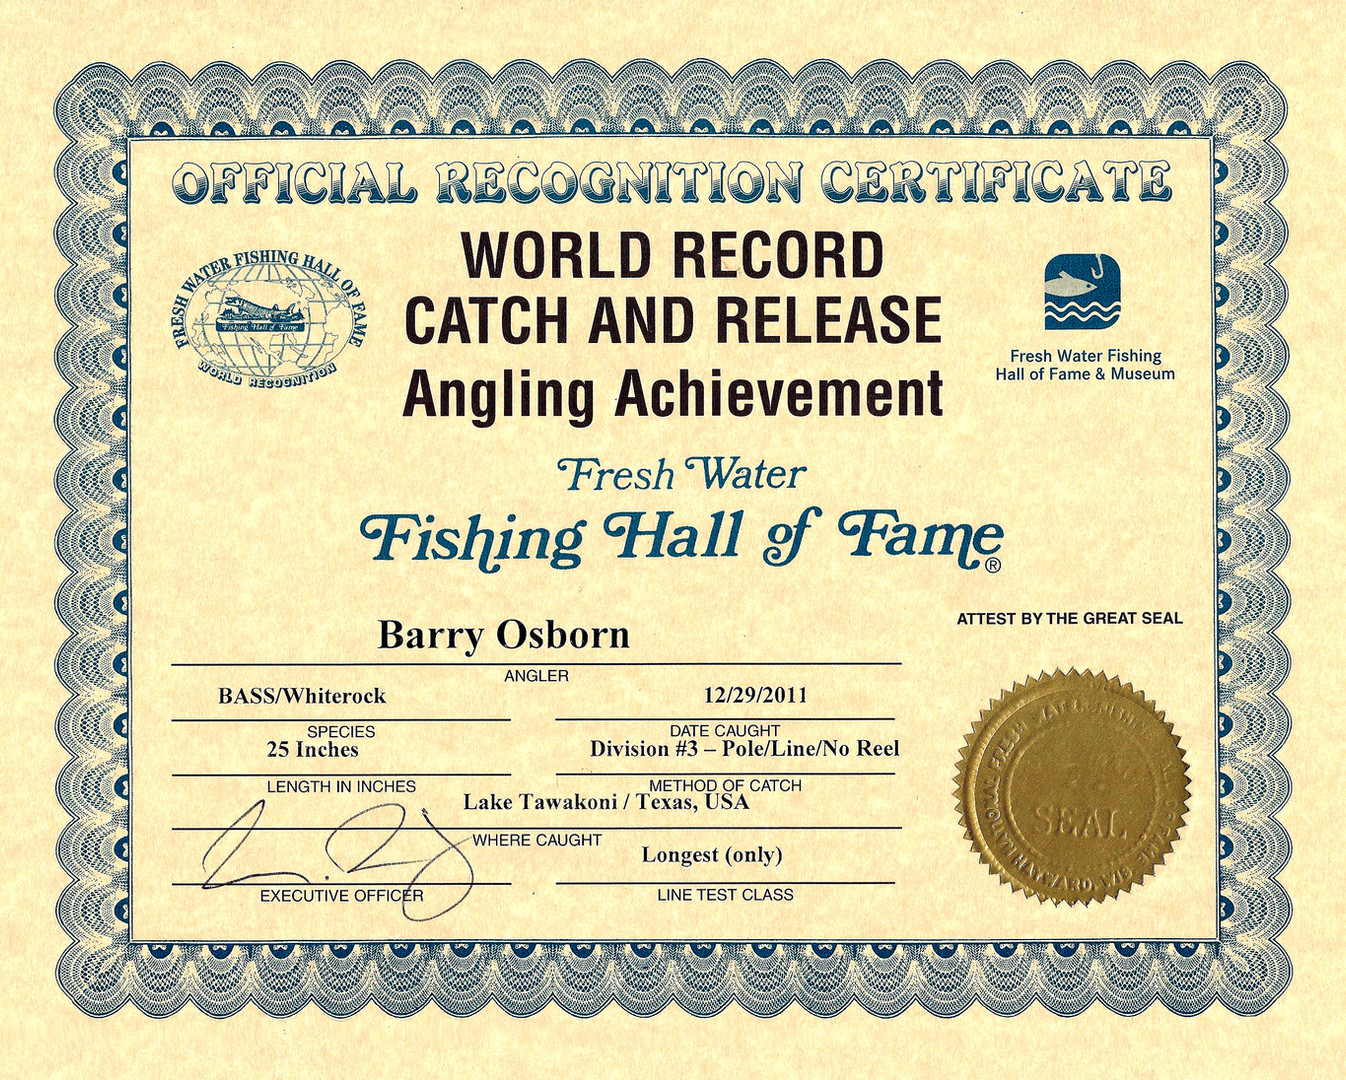 World Record Catch and Release Hybrid Striped Bass (Whiterock Bass) Certificate